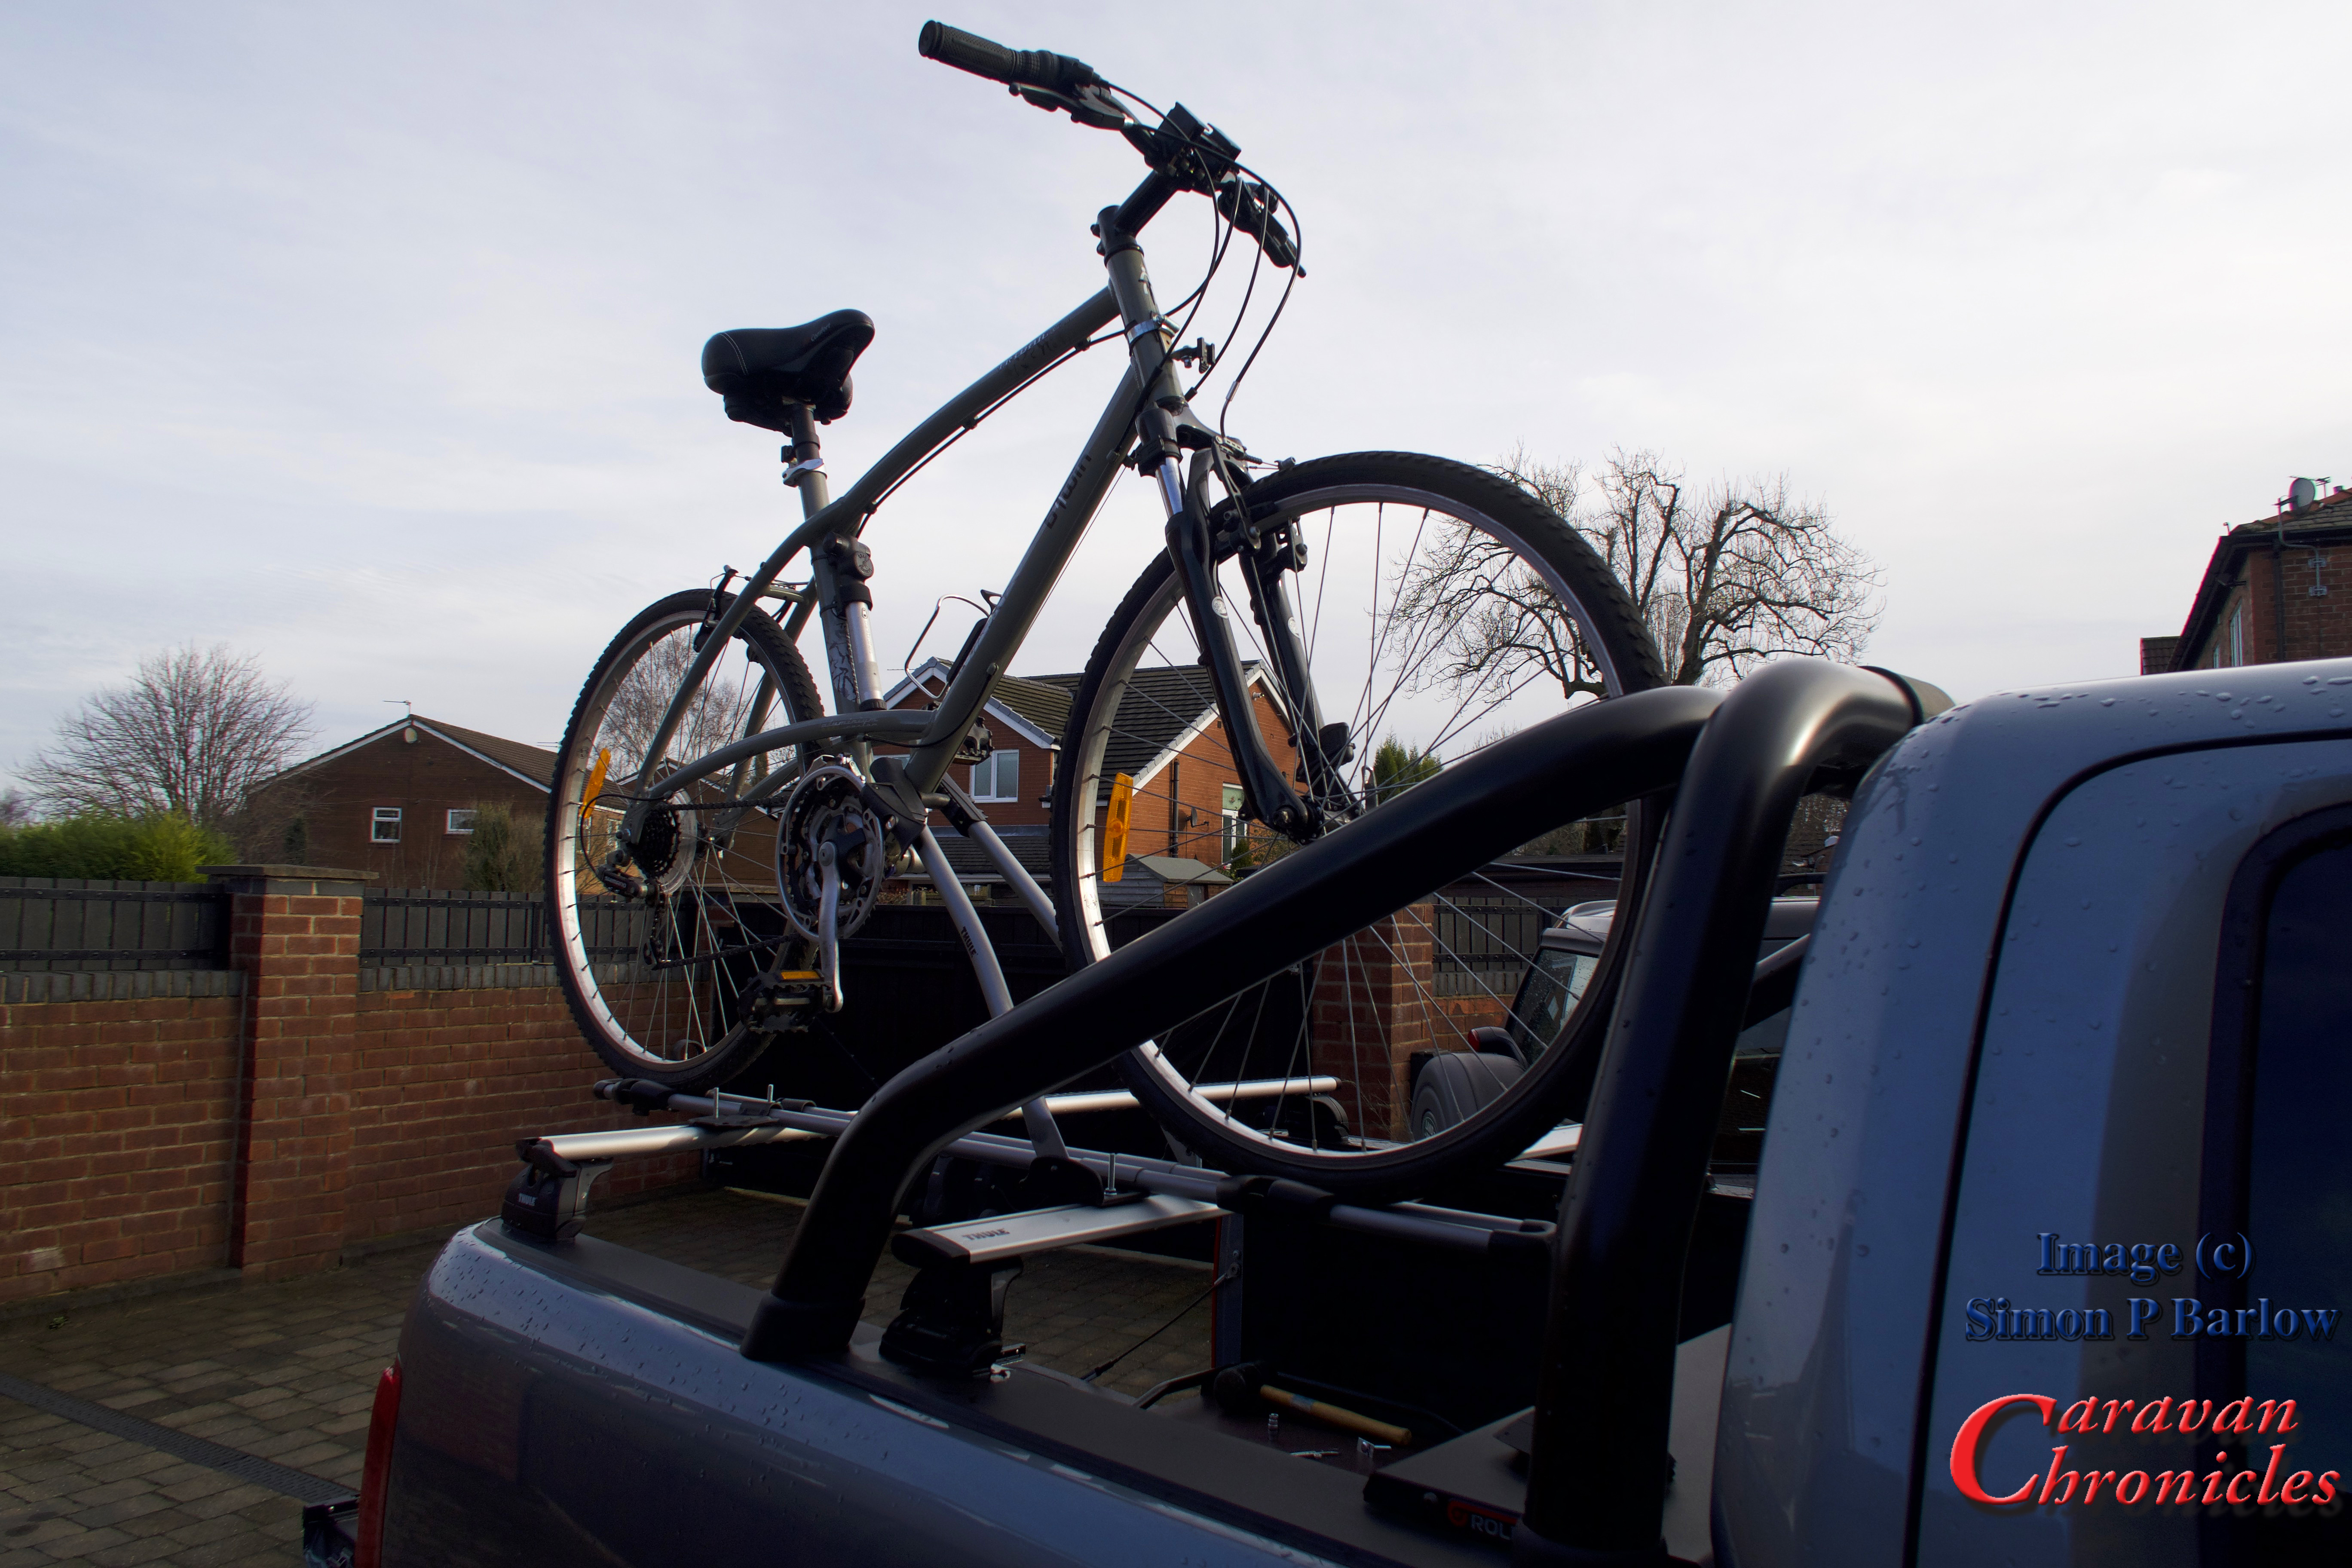 Fitting A Bike Rack To The Vw Amarok Part 2 Caravan